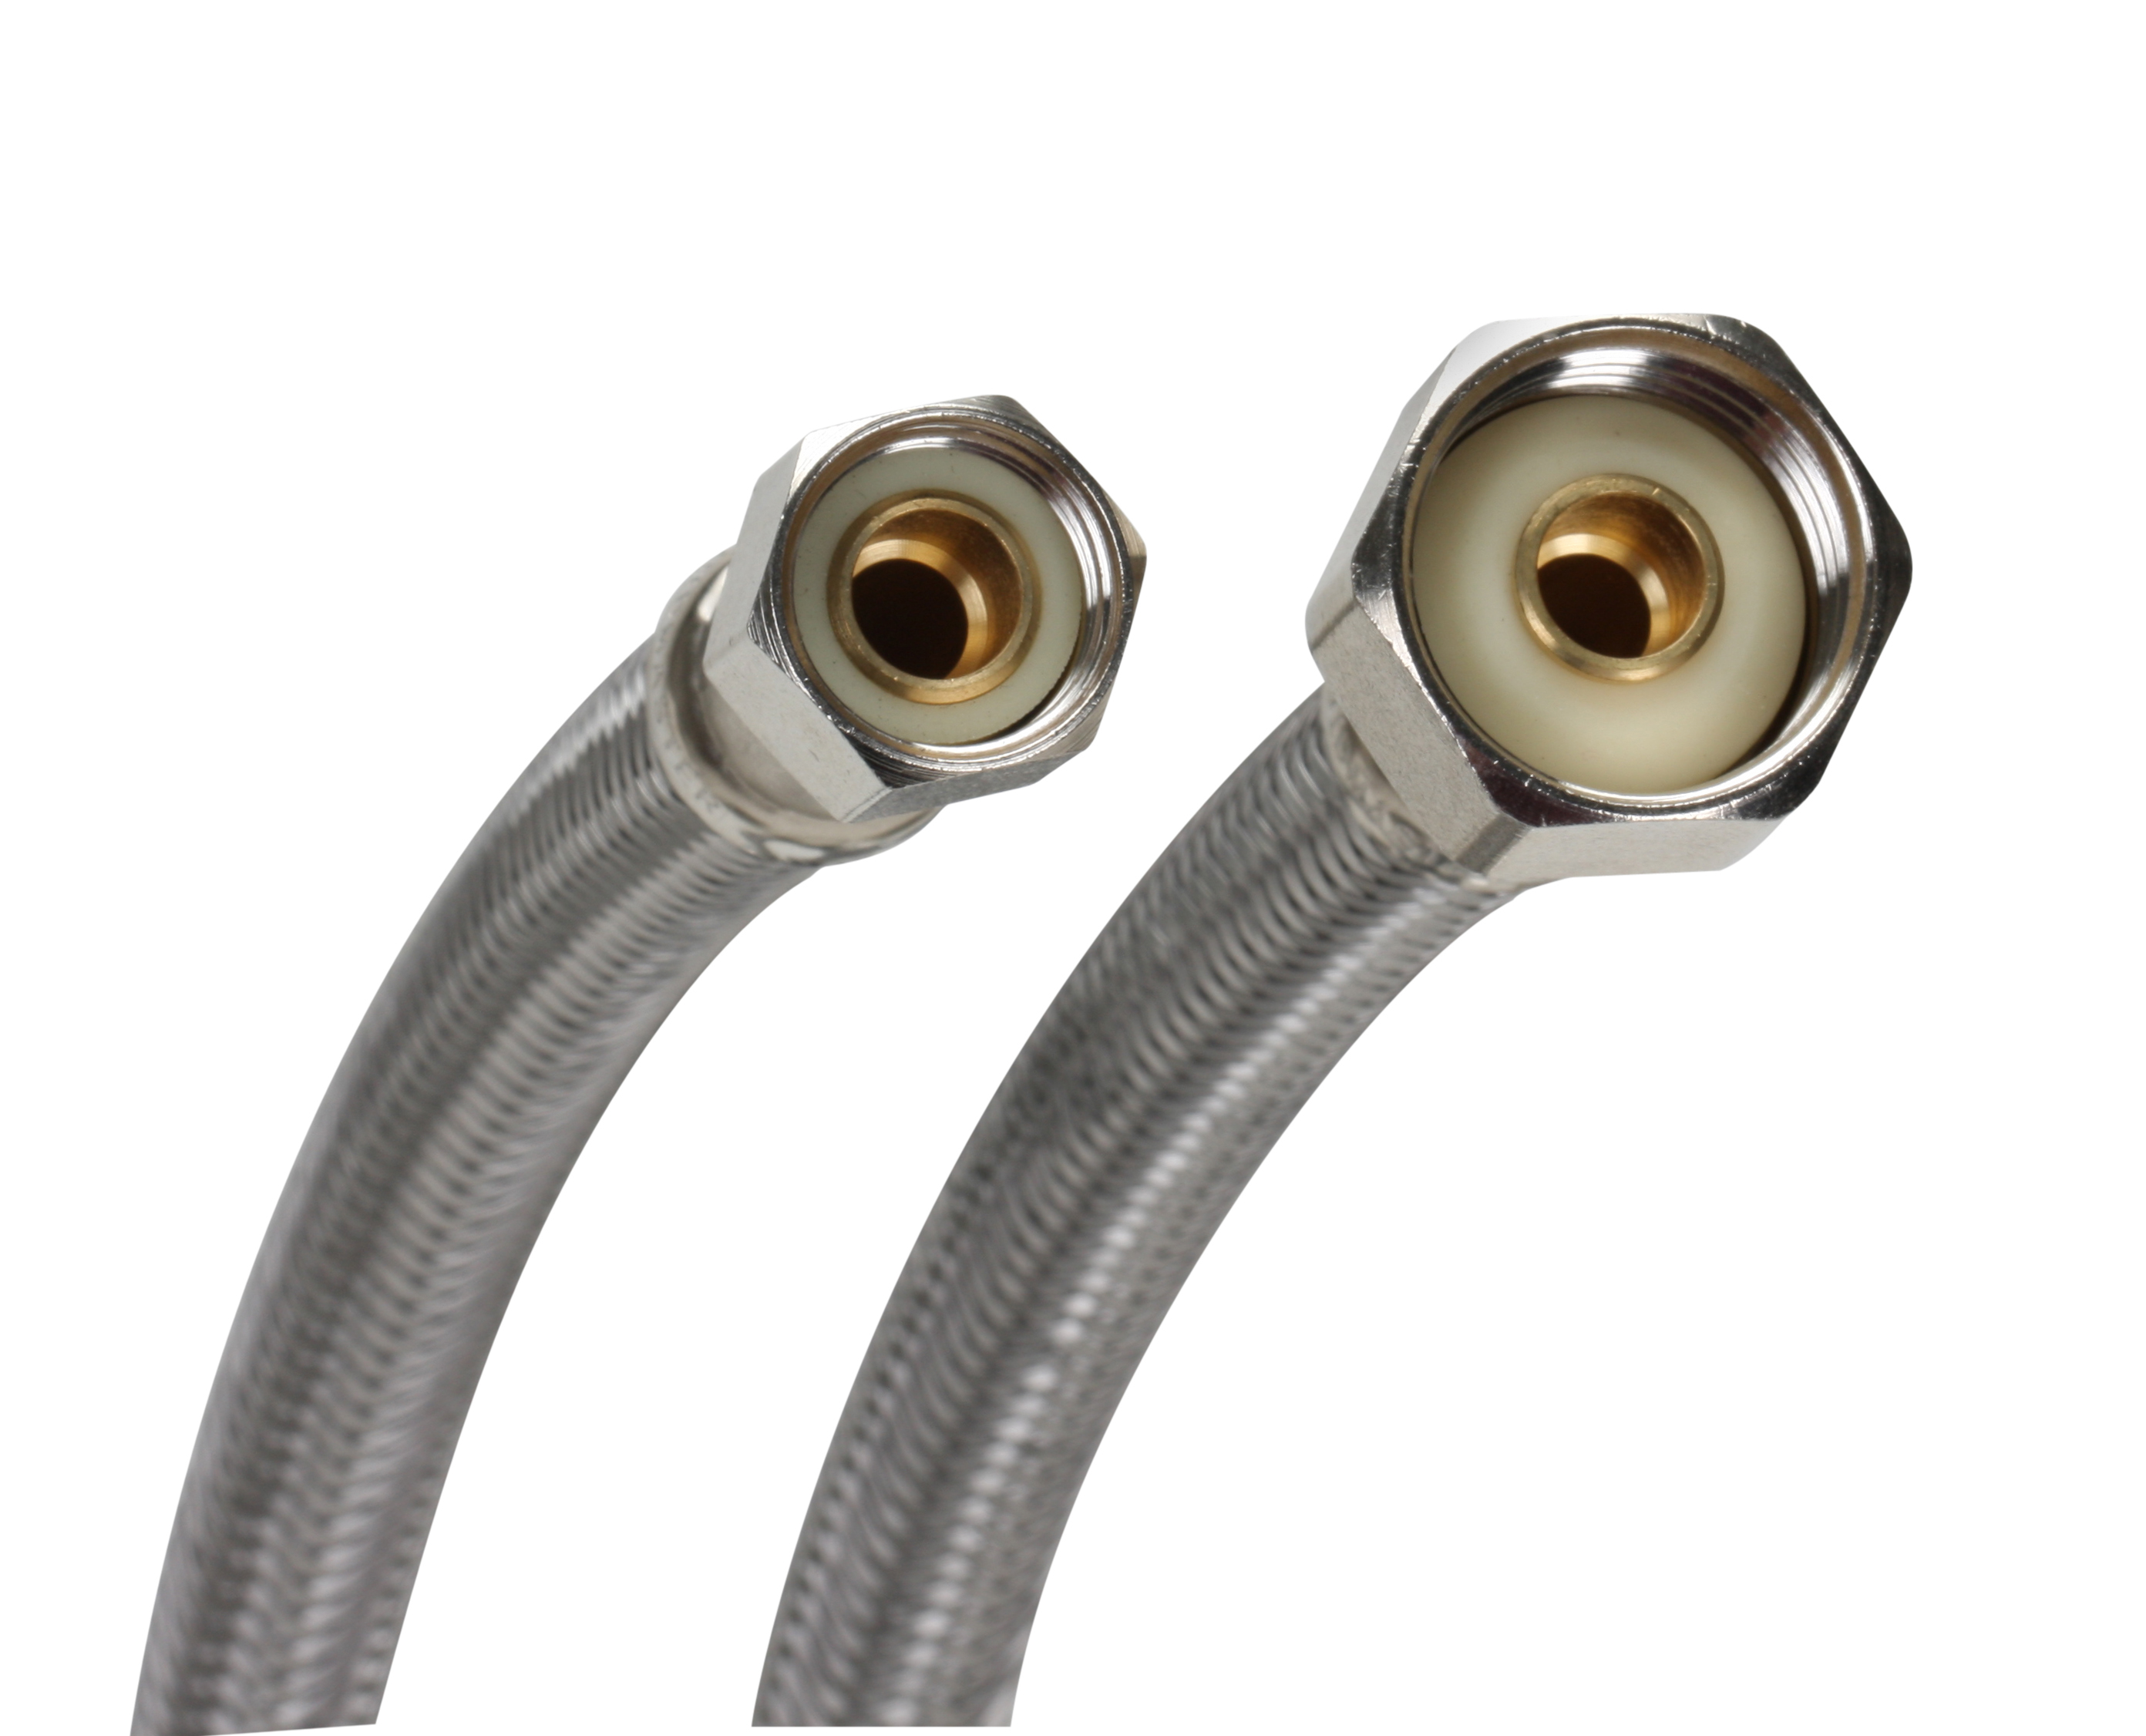 Fluidmaster Pro Series Braided Stainless Steel Faucet Supply Line 22209